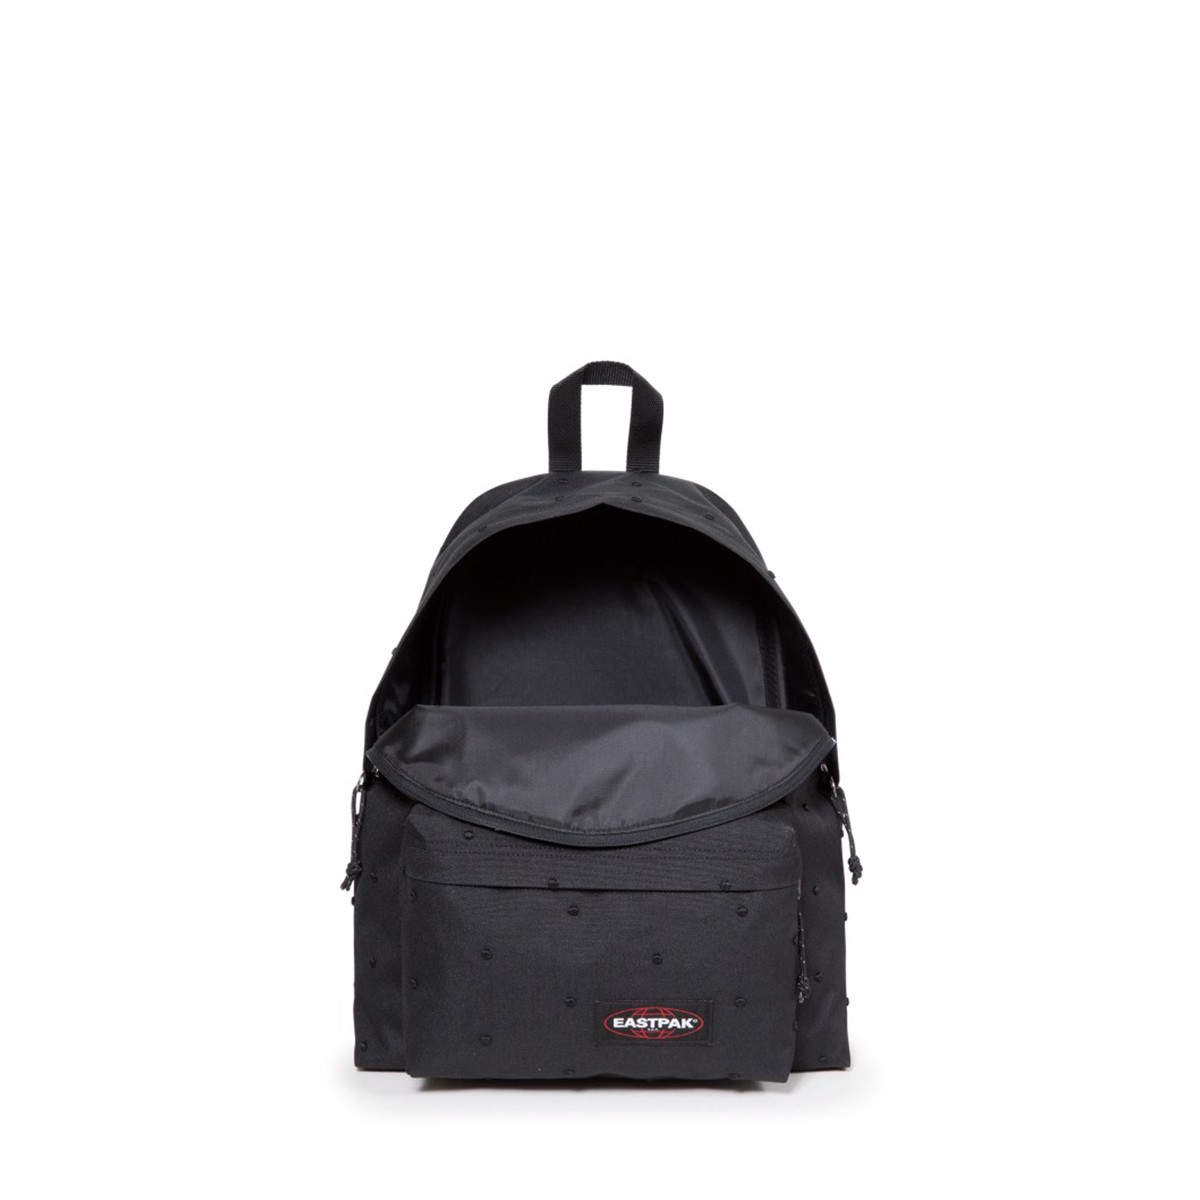 BALO UNISEX EASTPAK PADDED PAK'R (EK62092V) GARNISHED BLACK (40x30x18cm)